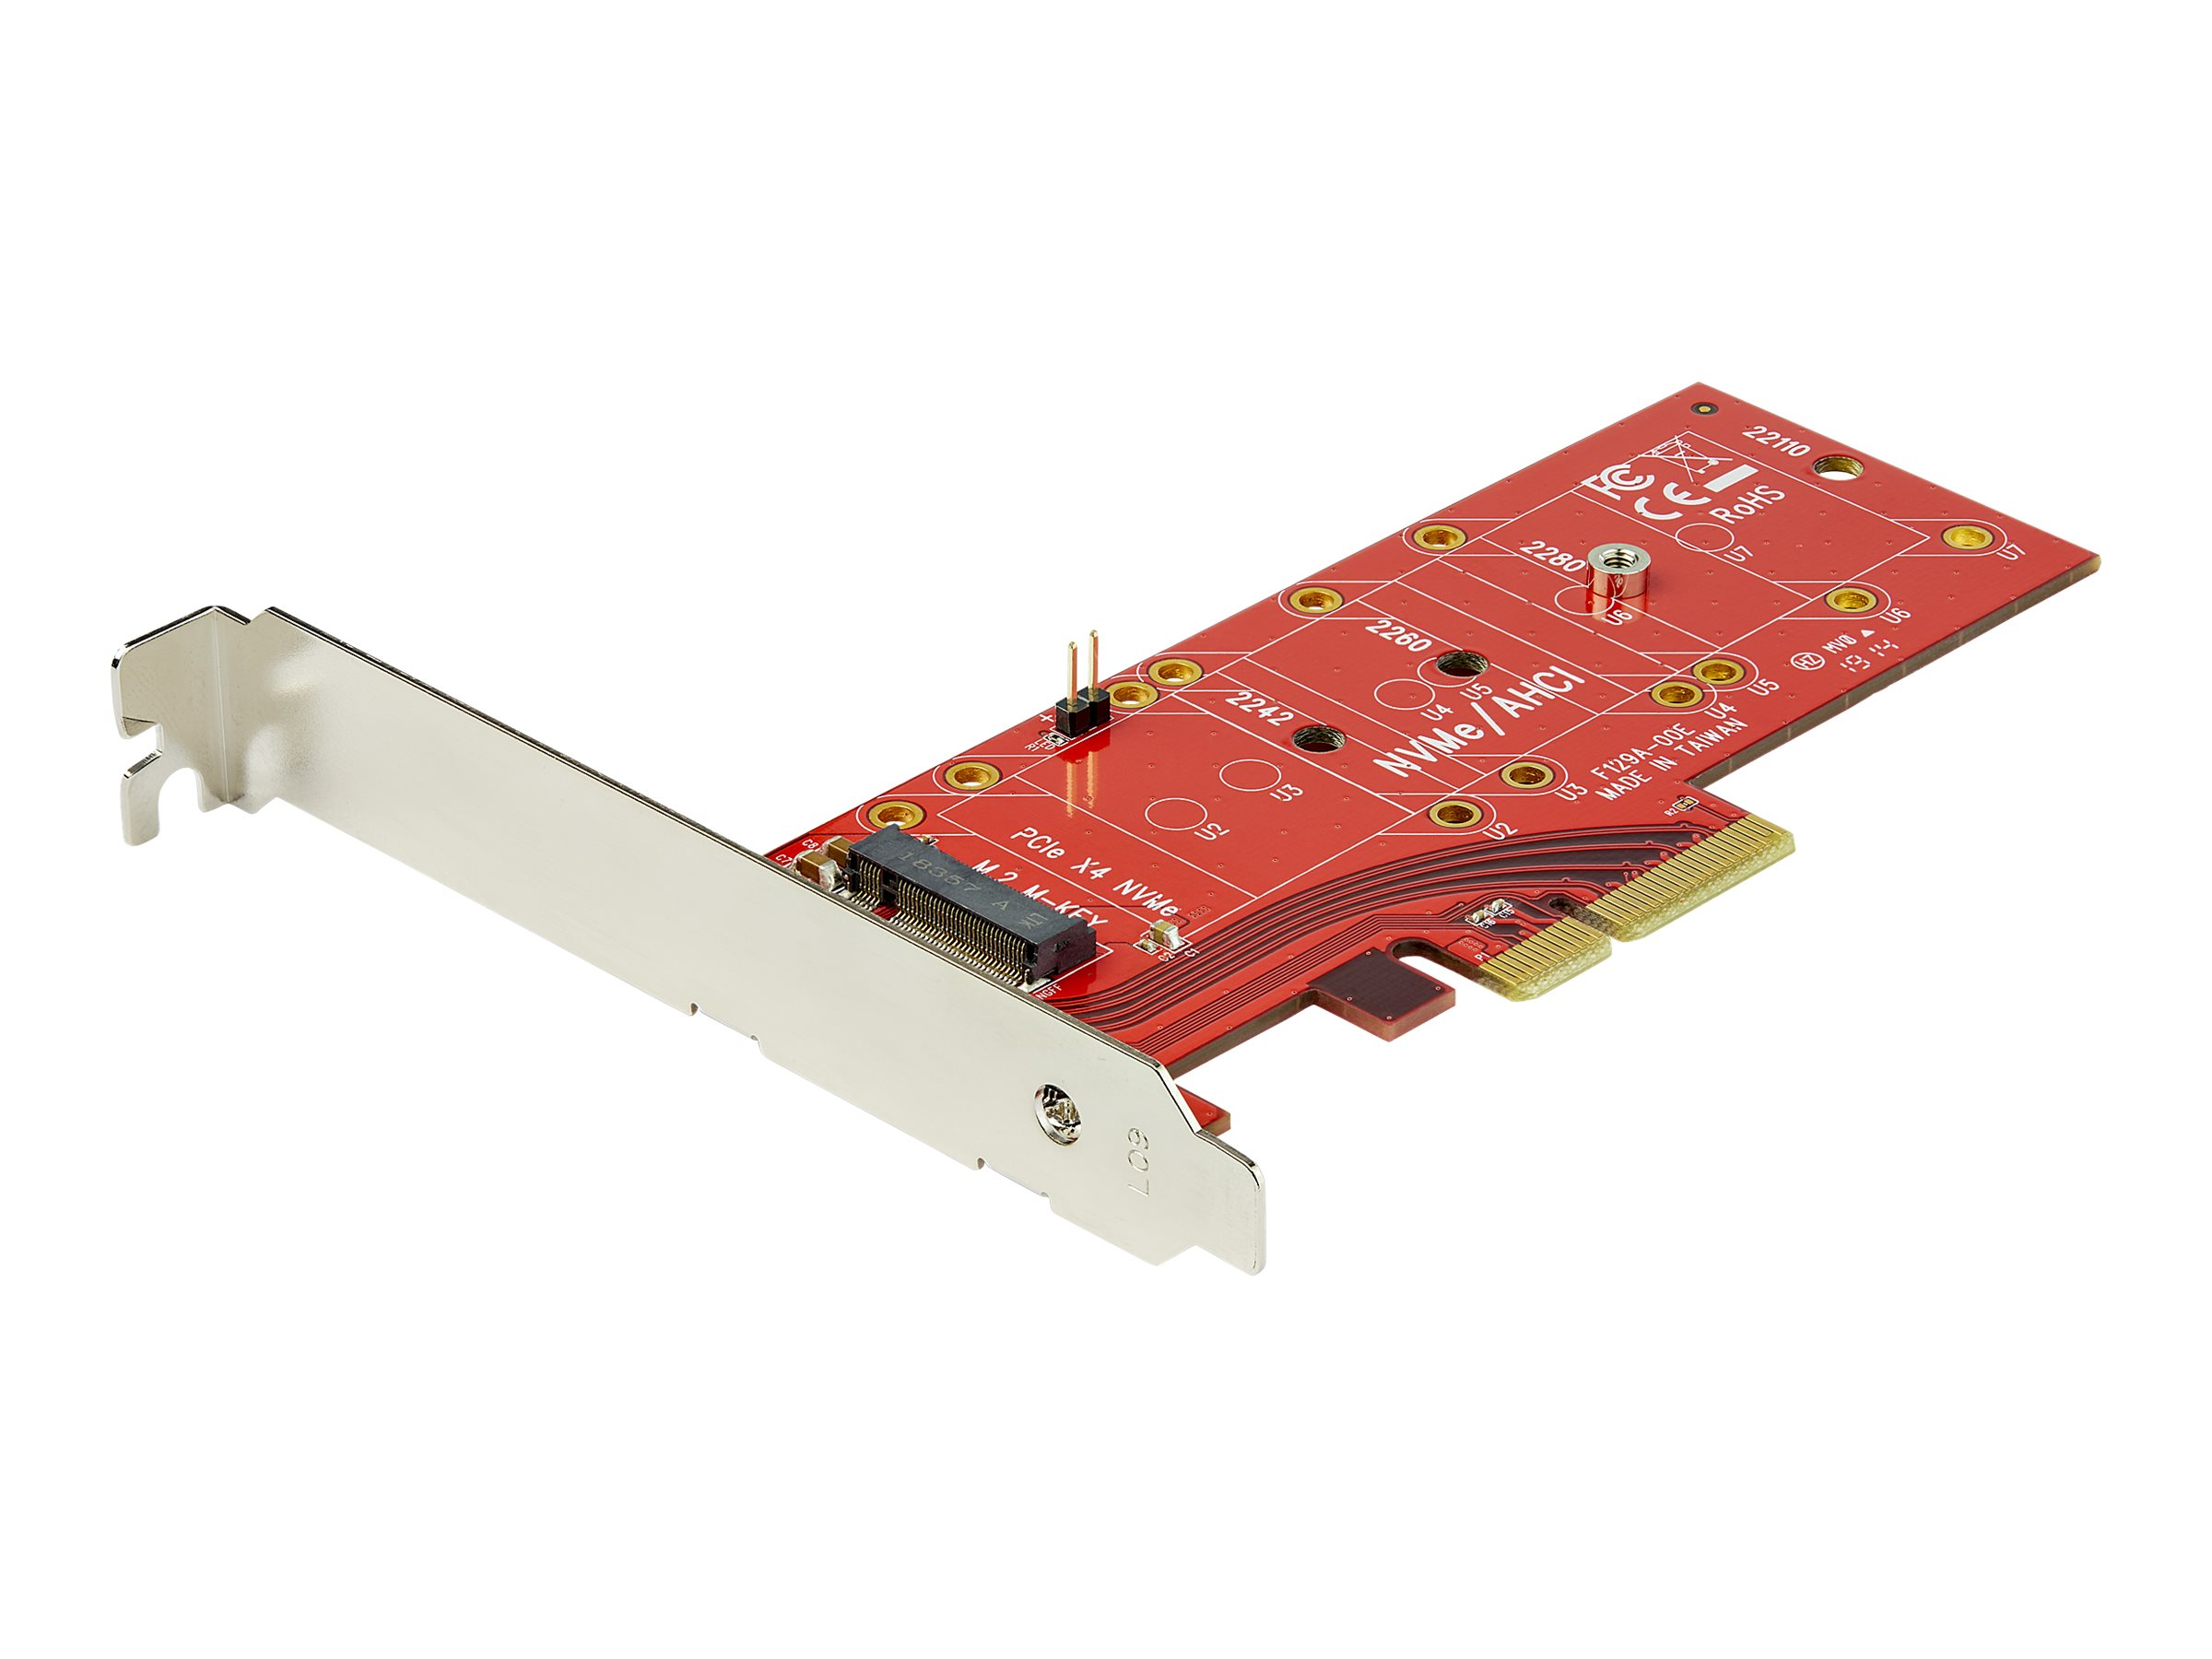 StarTech.com M2 PCIe SSD Adapter - x4 PCIe 3.0 NVMe / AHCI / NGFF / M-Key - Low Profile and Full Profile - SSD PCIe M.2 Adapter (PEX4M2E1) - Schnittstellenadapter - M.2